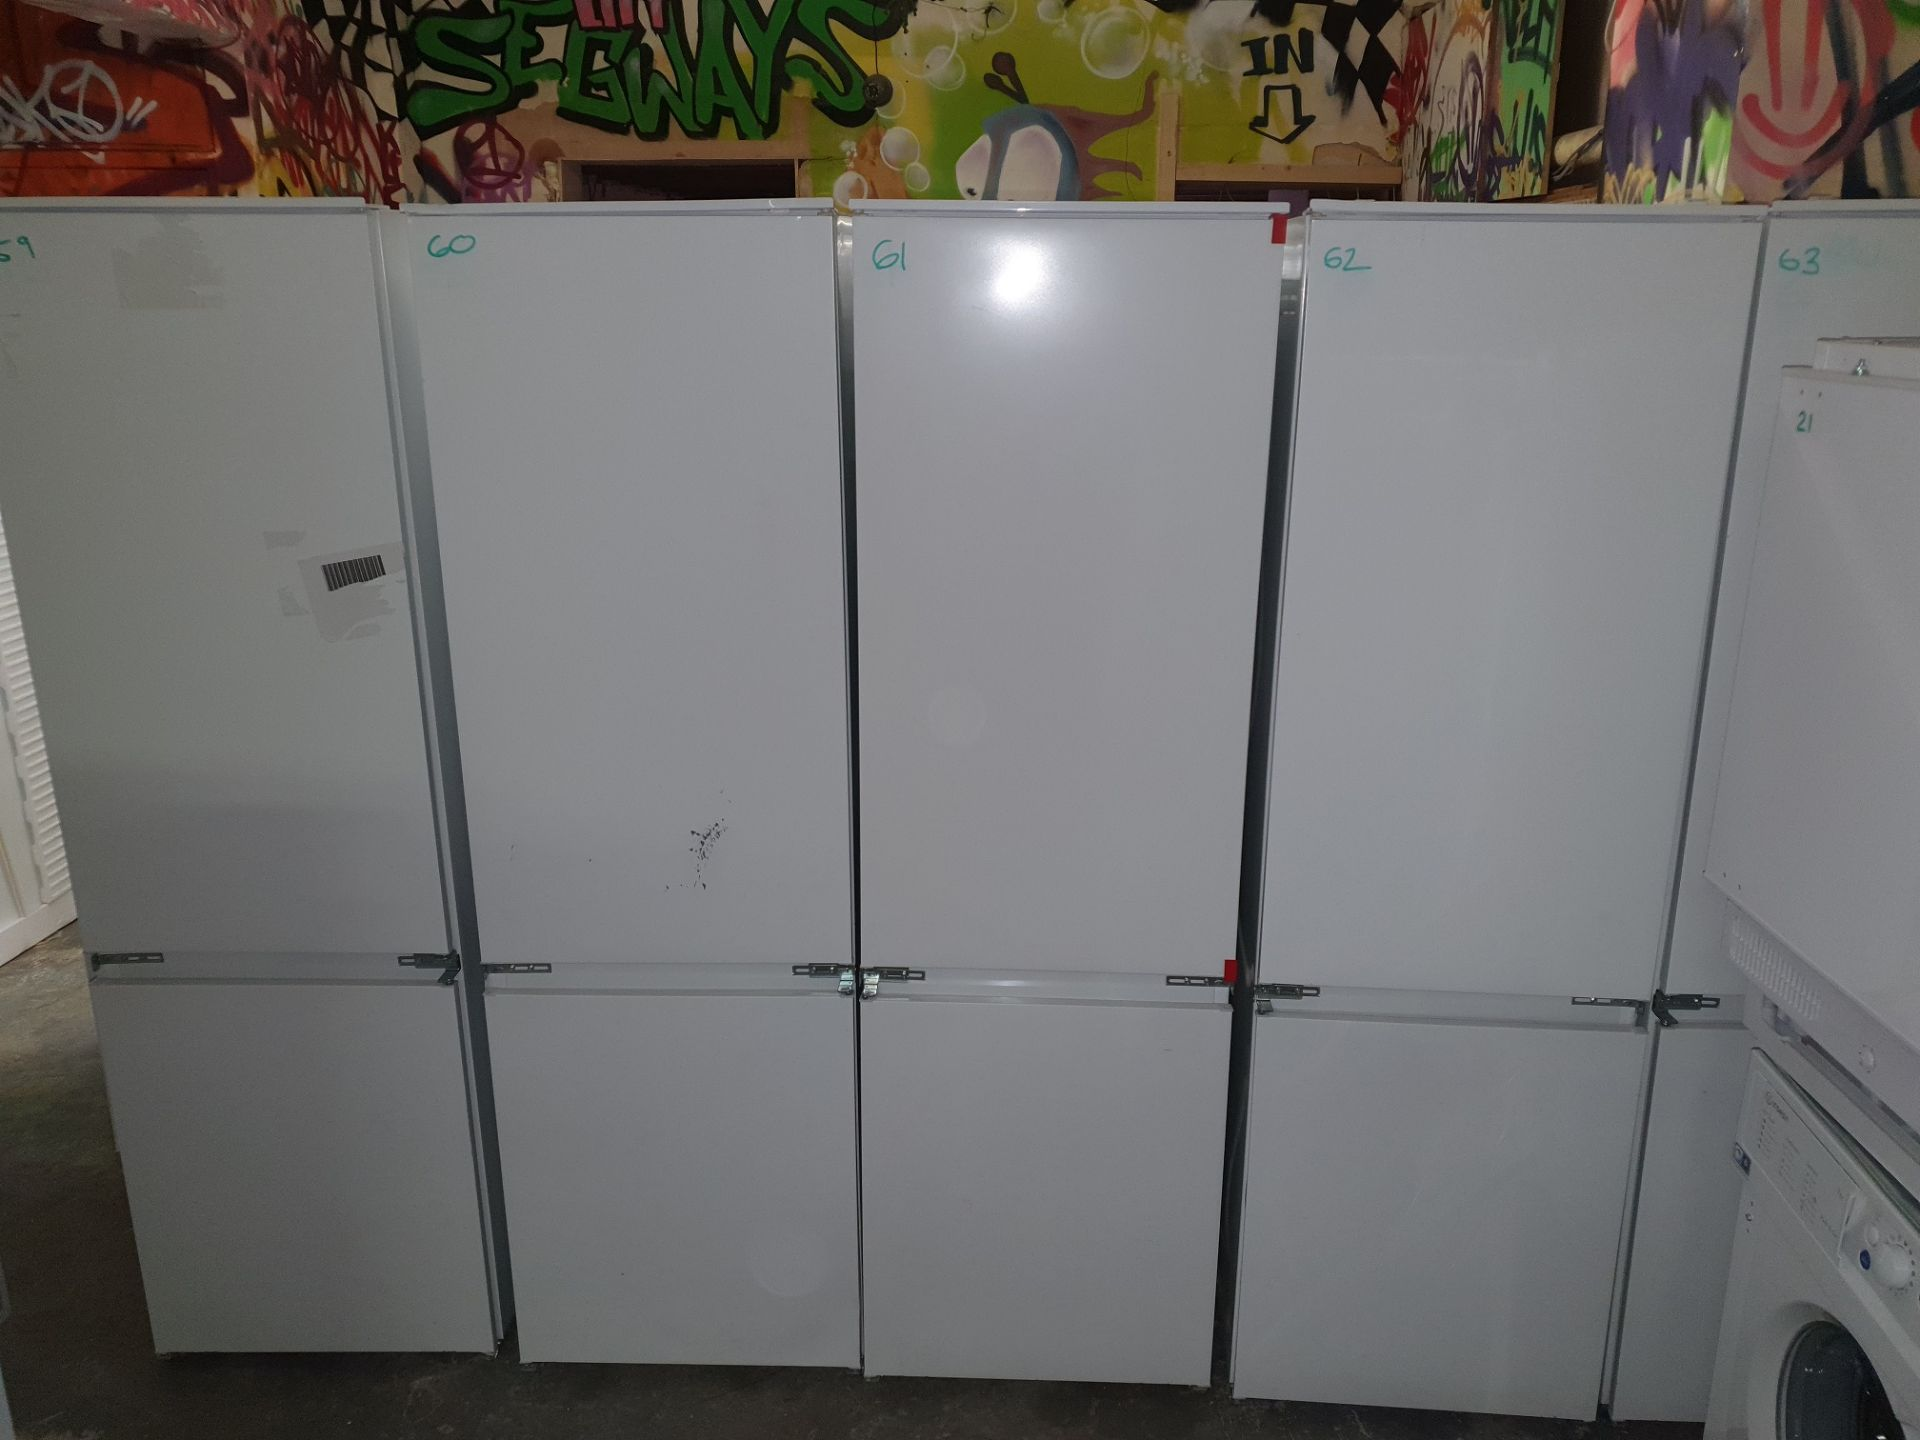 NEW/GRADED AND UNPACKAGED Prima Plus PRRF700 Built In Frost Free Fridge Freezer (Brand new slight - Image 2 of 14